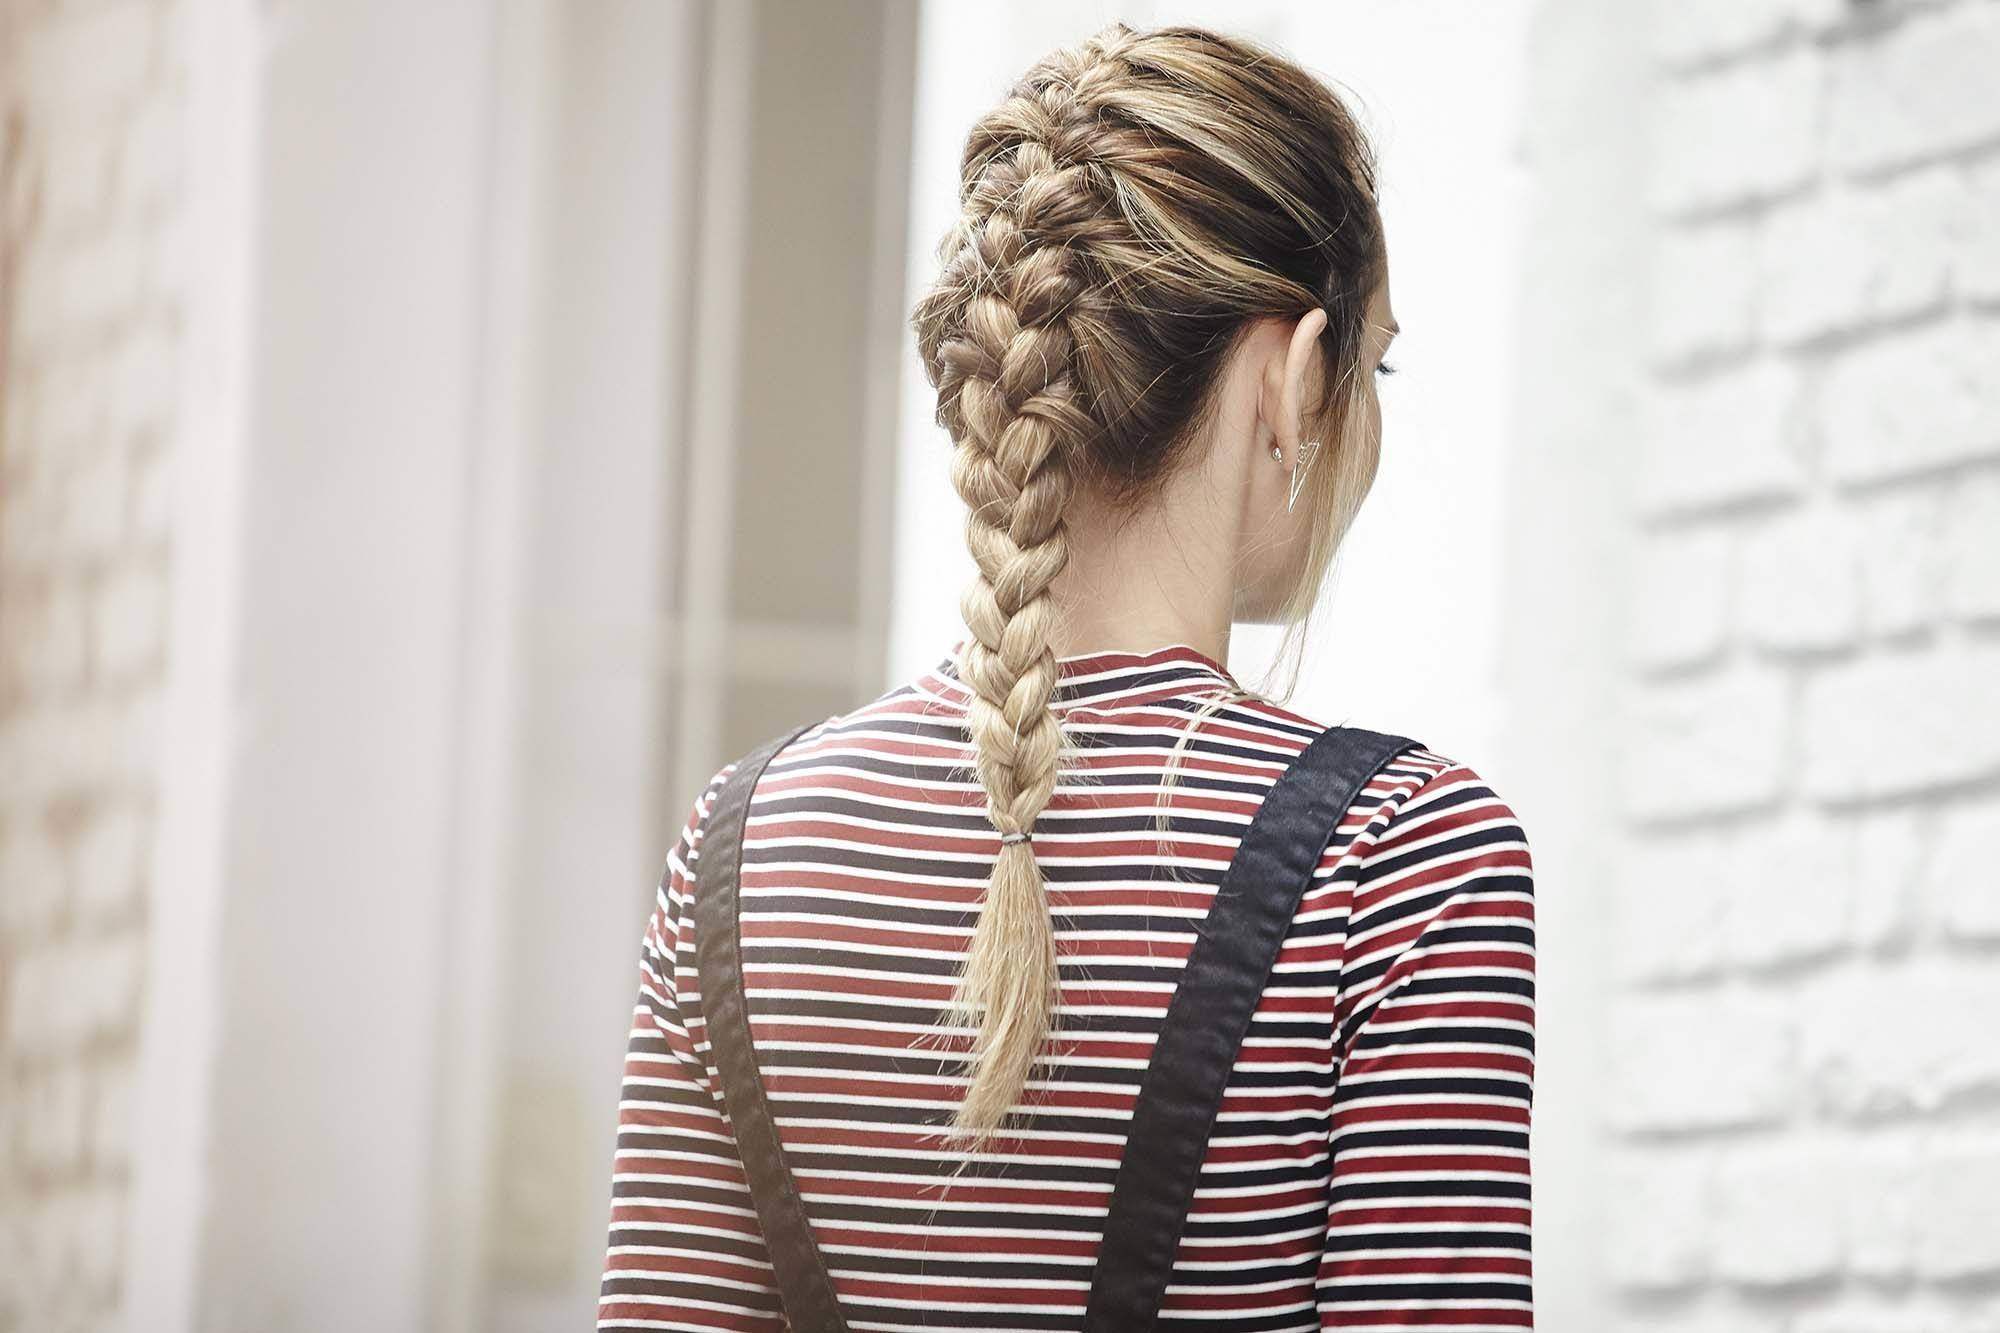 Updos with braids: Back shot of a woman with bronde hair styled into a French braid.